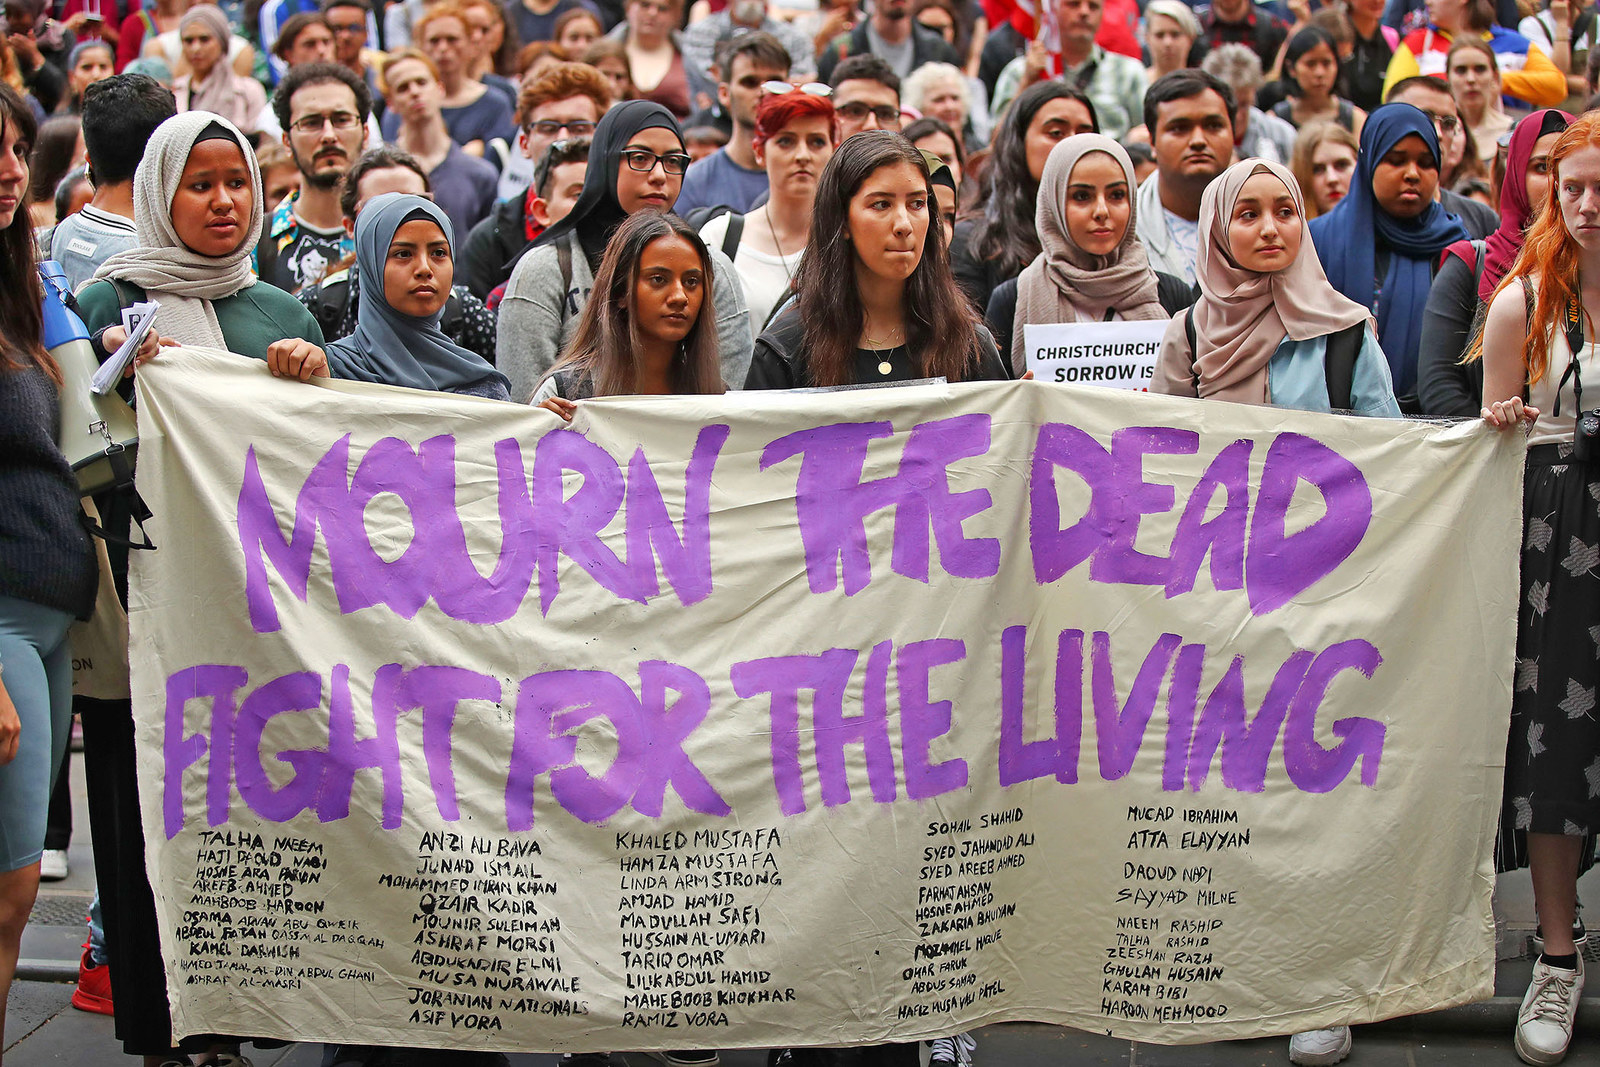 Protesters hold signs as they march during the Stand Against Racism and Islamophobia rally on March 19, in Melbourne, Australia.